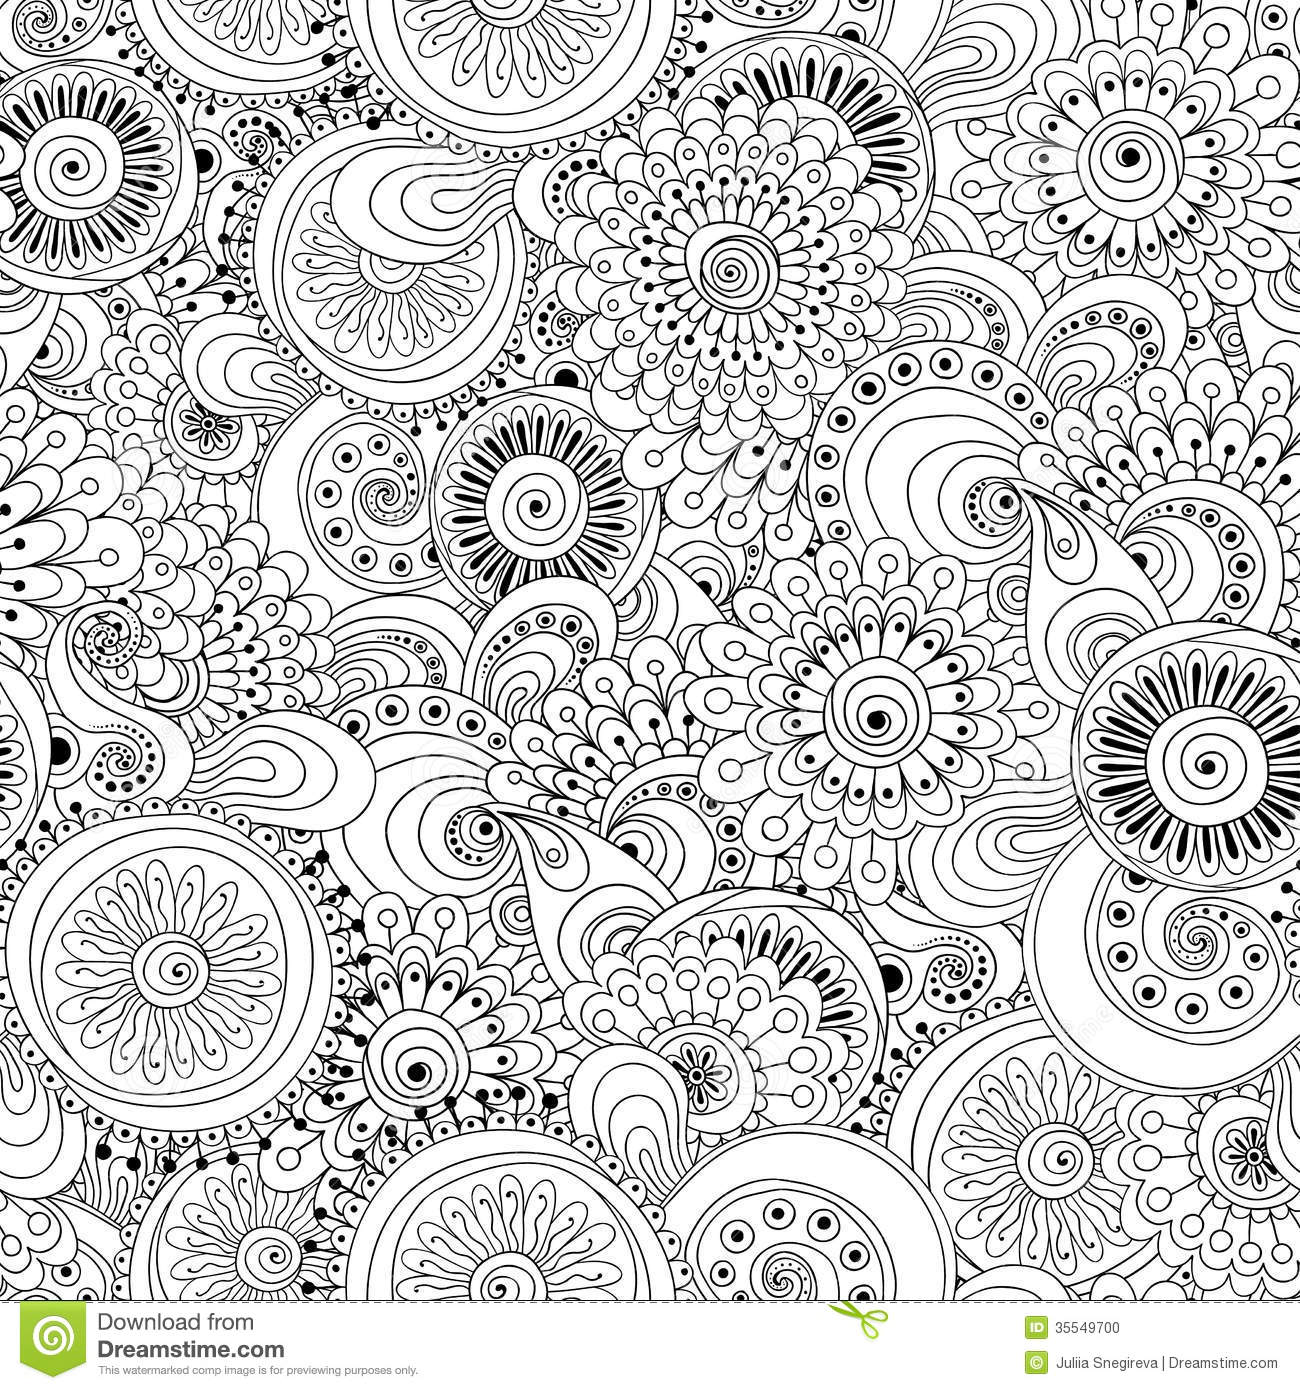 Download Black And White Patterns Vintage Backgrounds And White